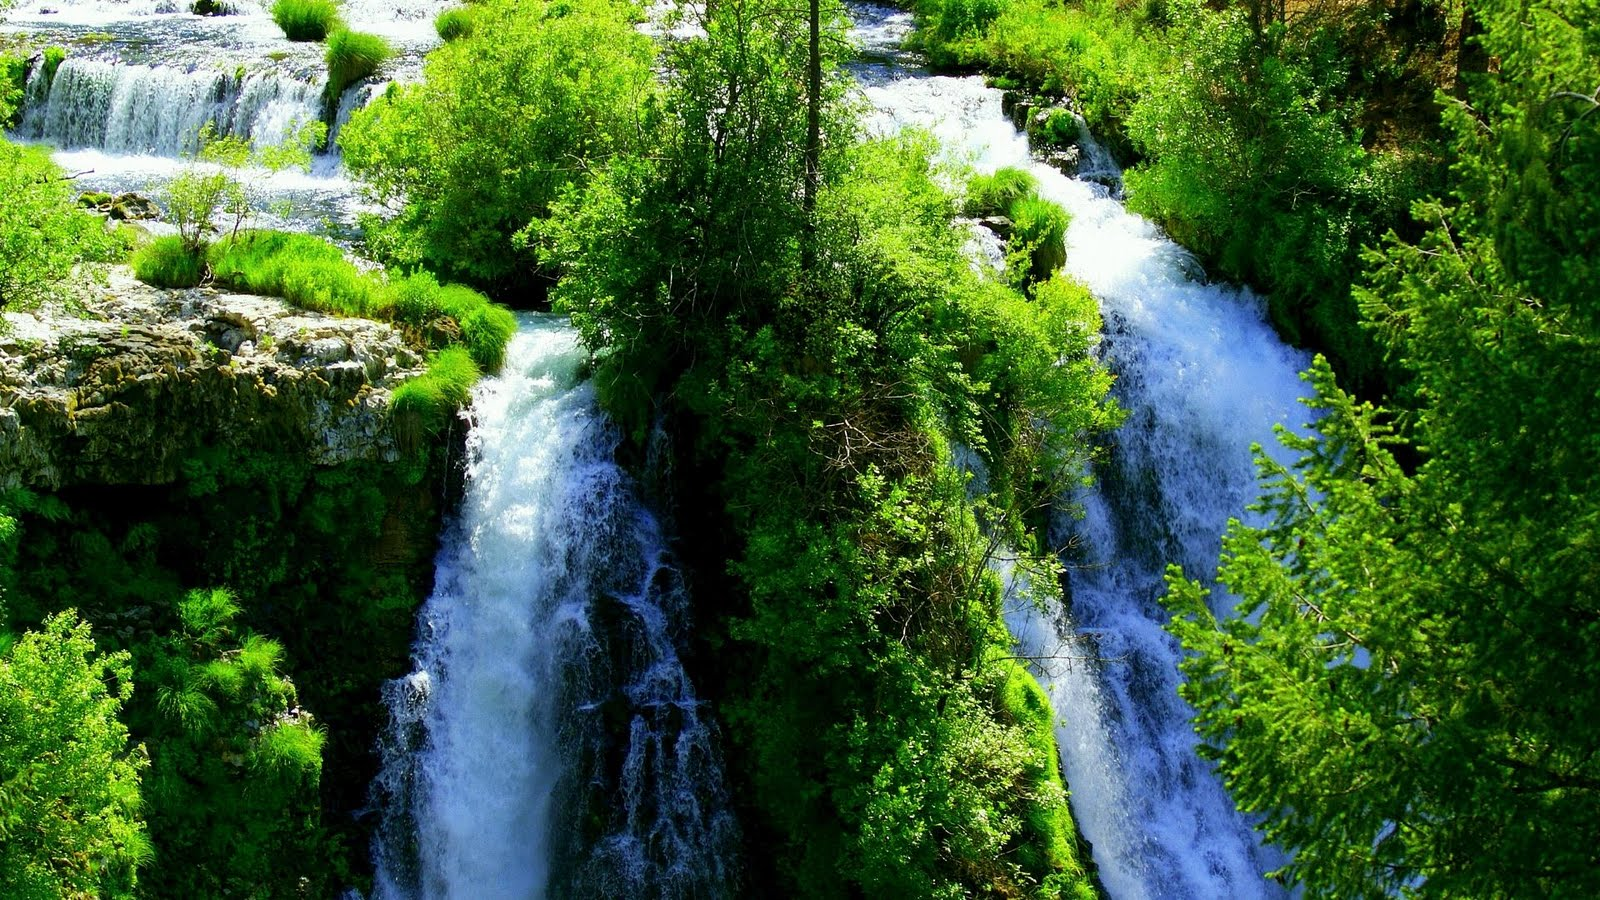 Landscape wallpapers amazing landscape pictures hd nature - Nature wallpaper of waterfall ...